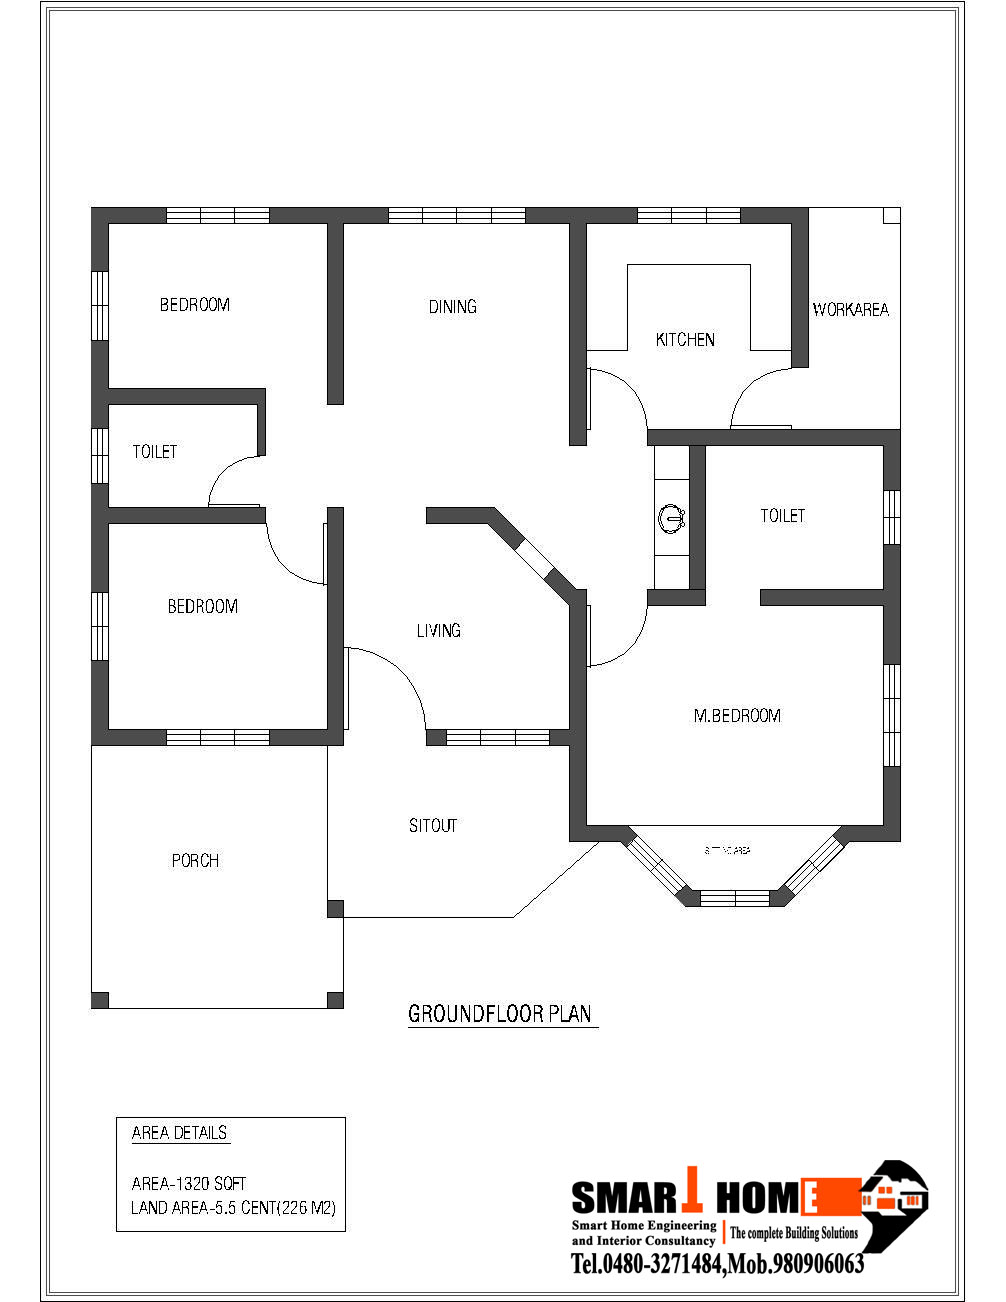 House photos and plans may 2012 for Home plans com